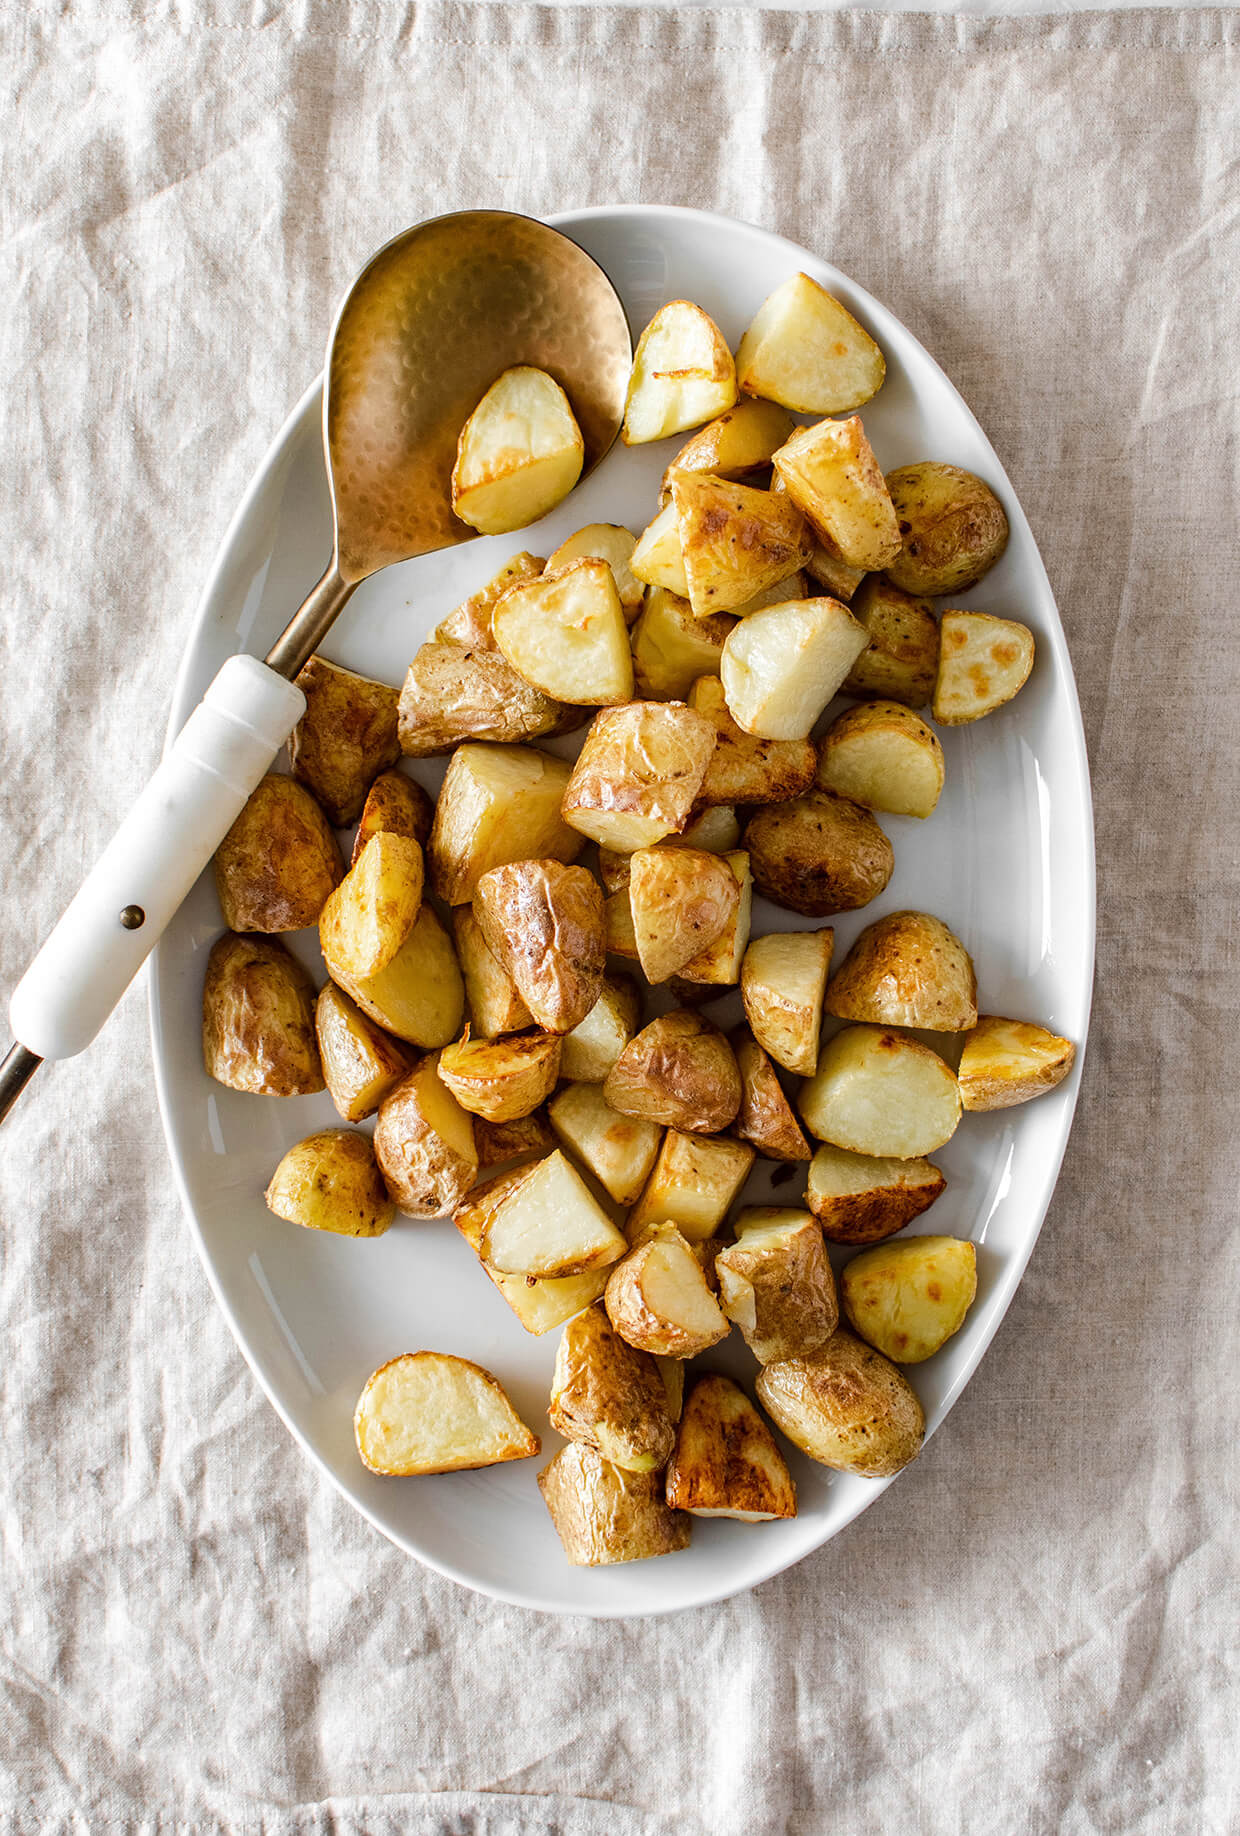 roasted potatoes served on a plate